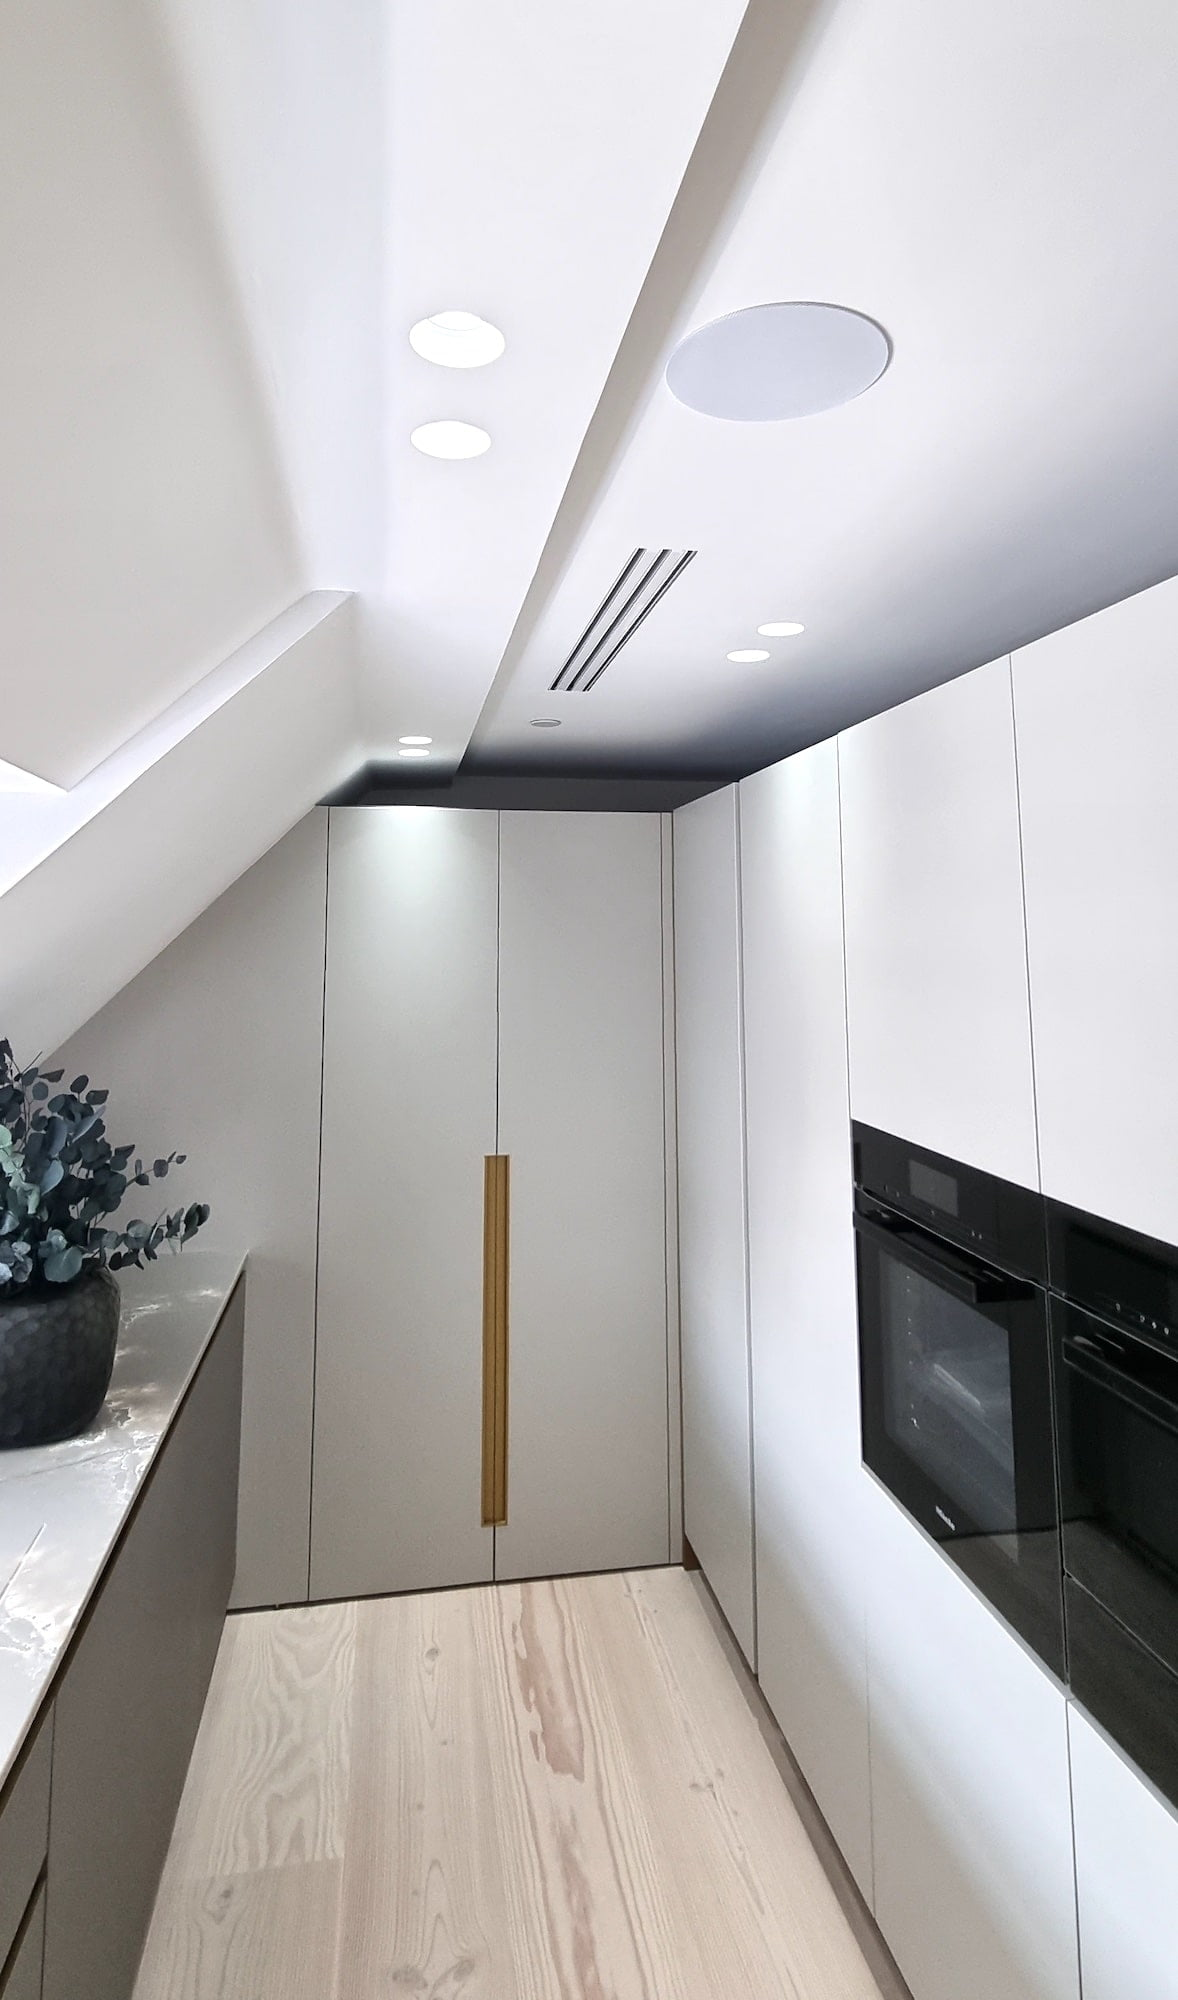 AAC Blogs - Do you need air conditioning in a loft conversion?